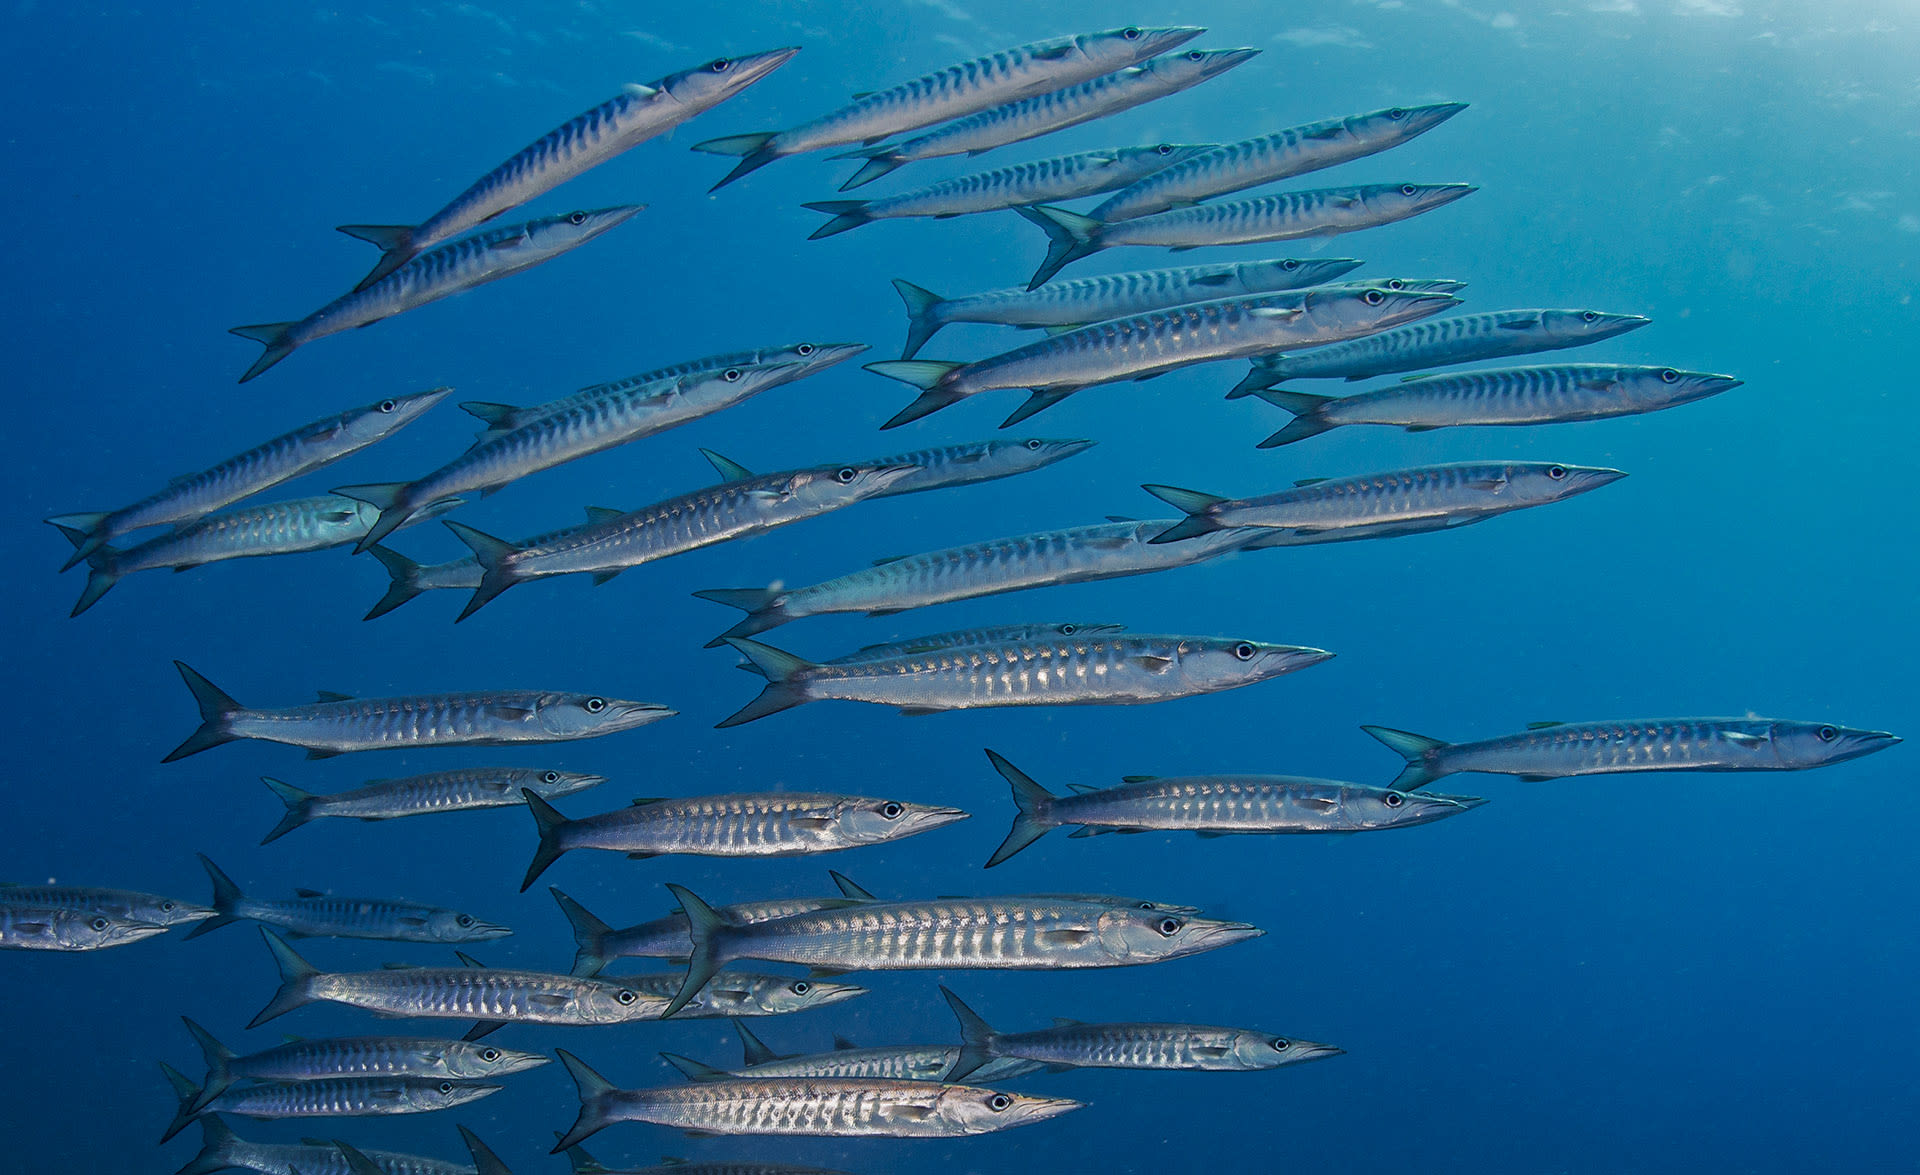 Barracudas are ferocious predators that hunt in packs. They rely on both, speed and their fang-like sharp teeth to hunt.